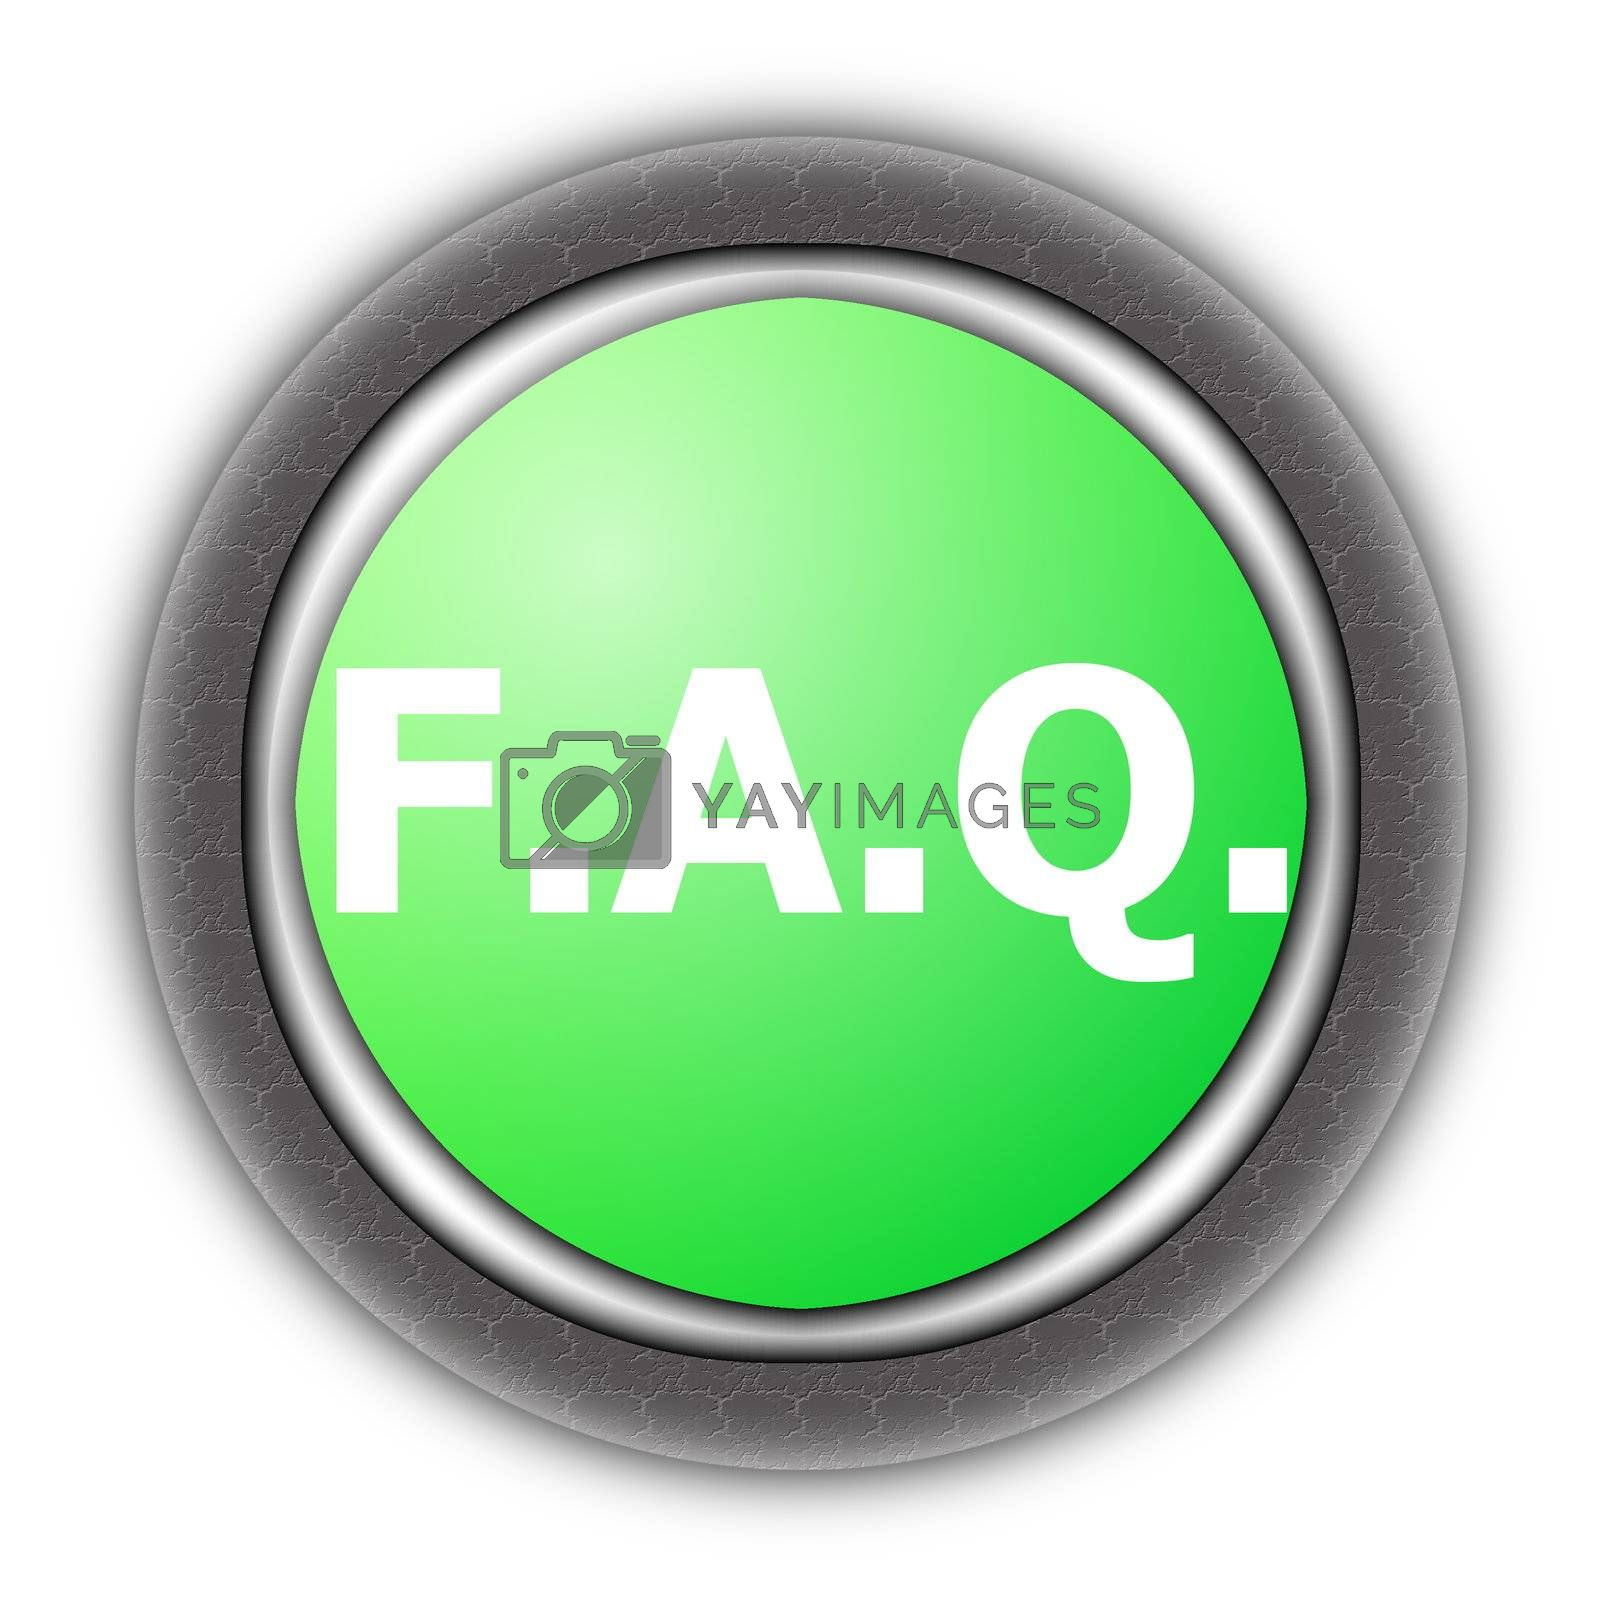 faq button for internet website isolated on white